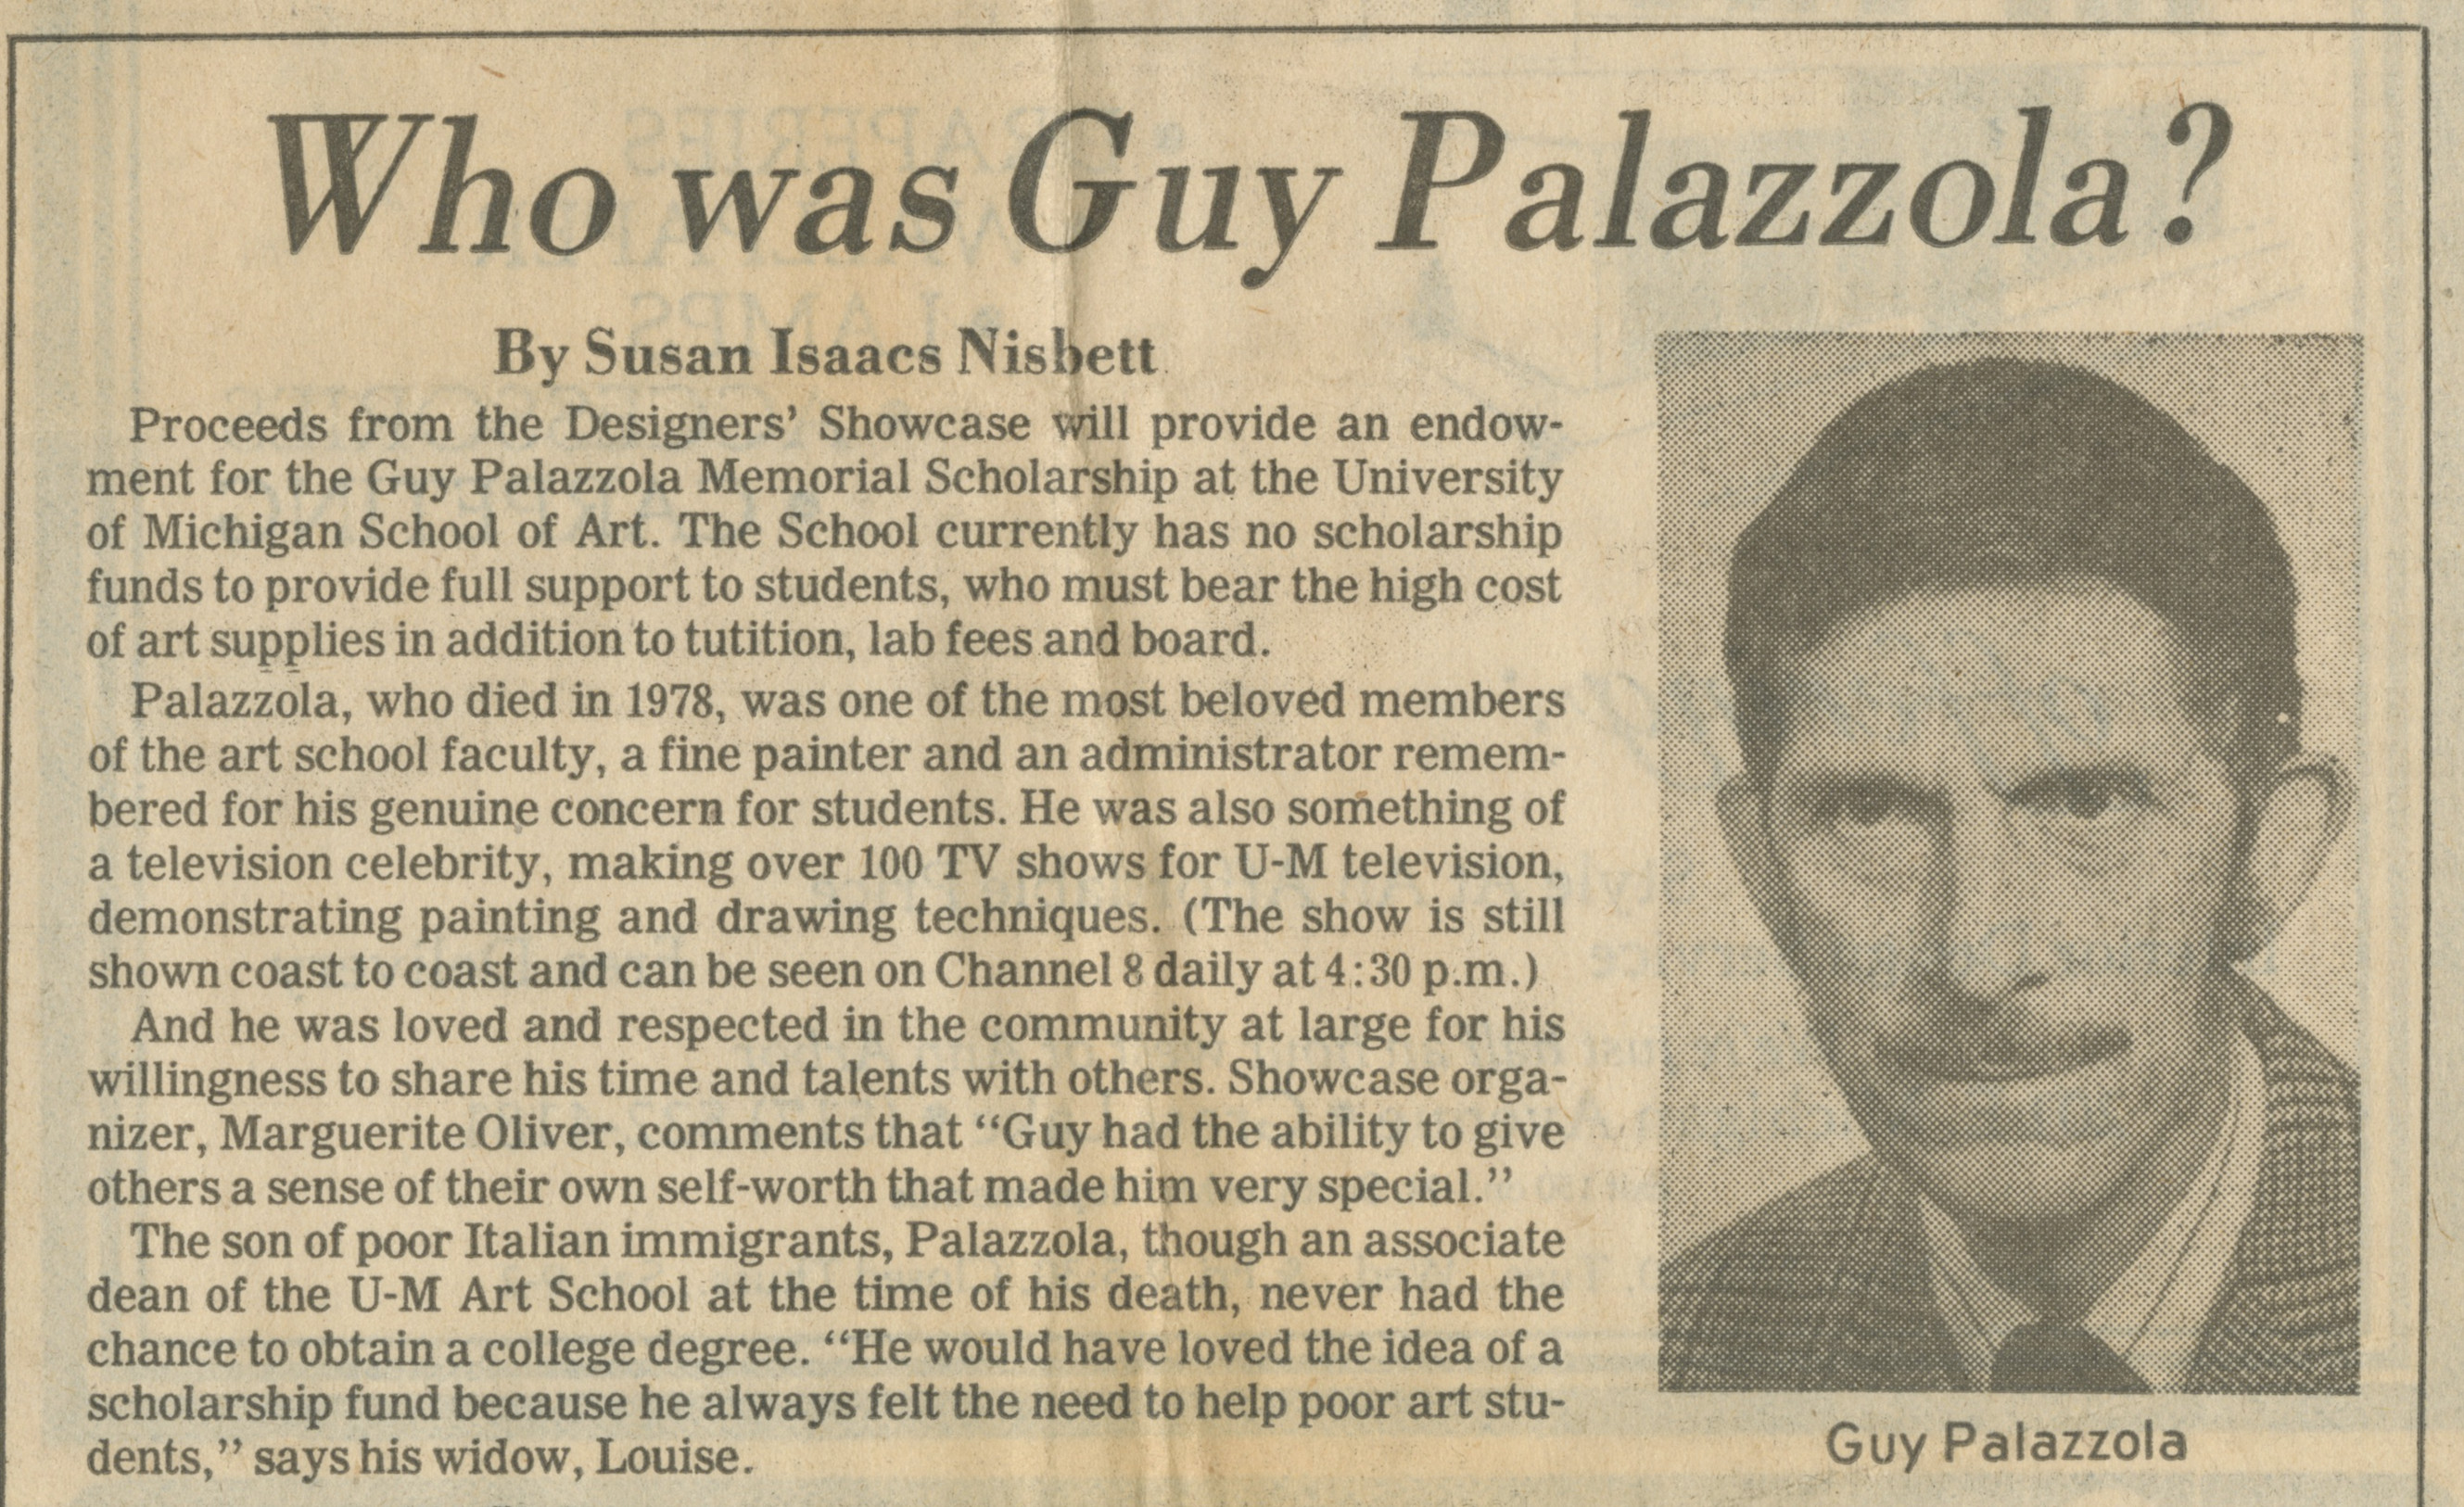 Who Was Guy Palazzola? image